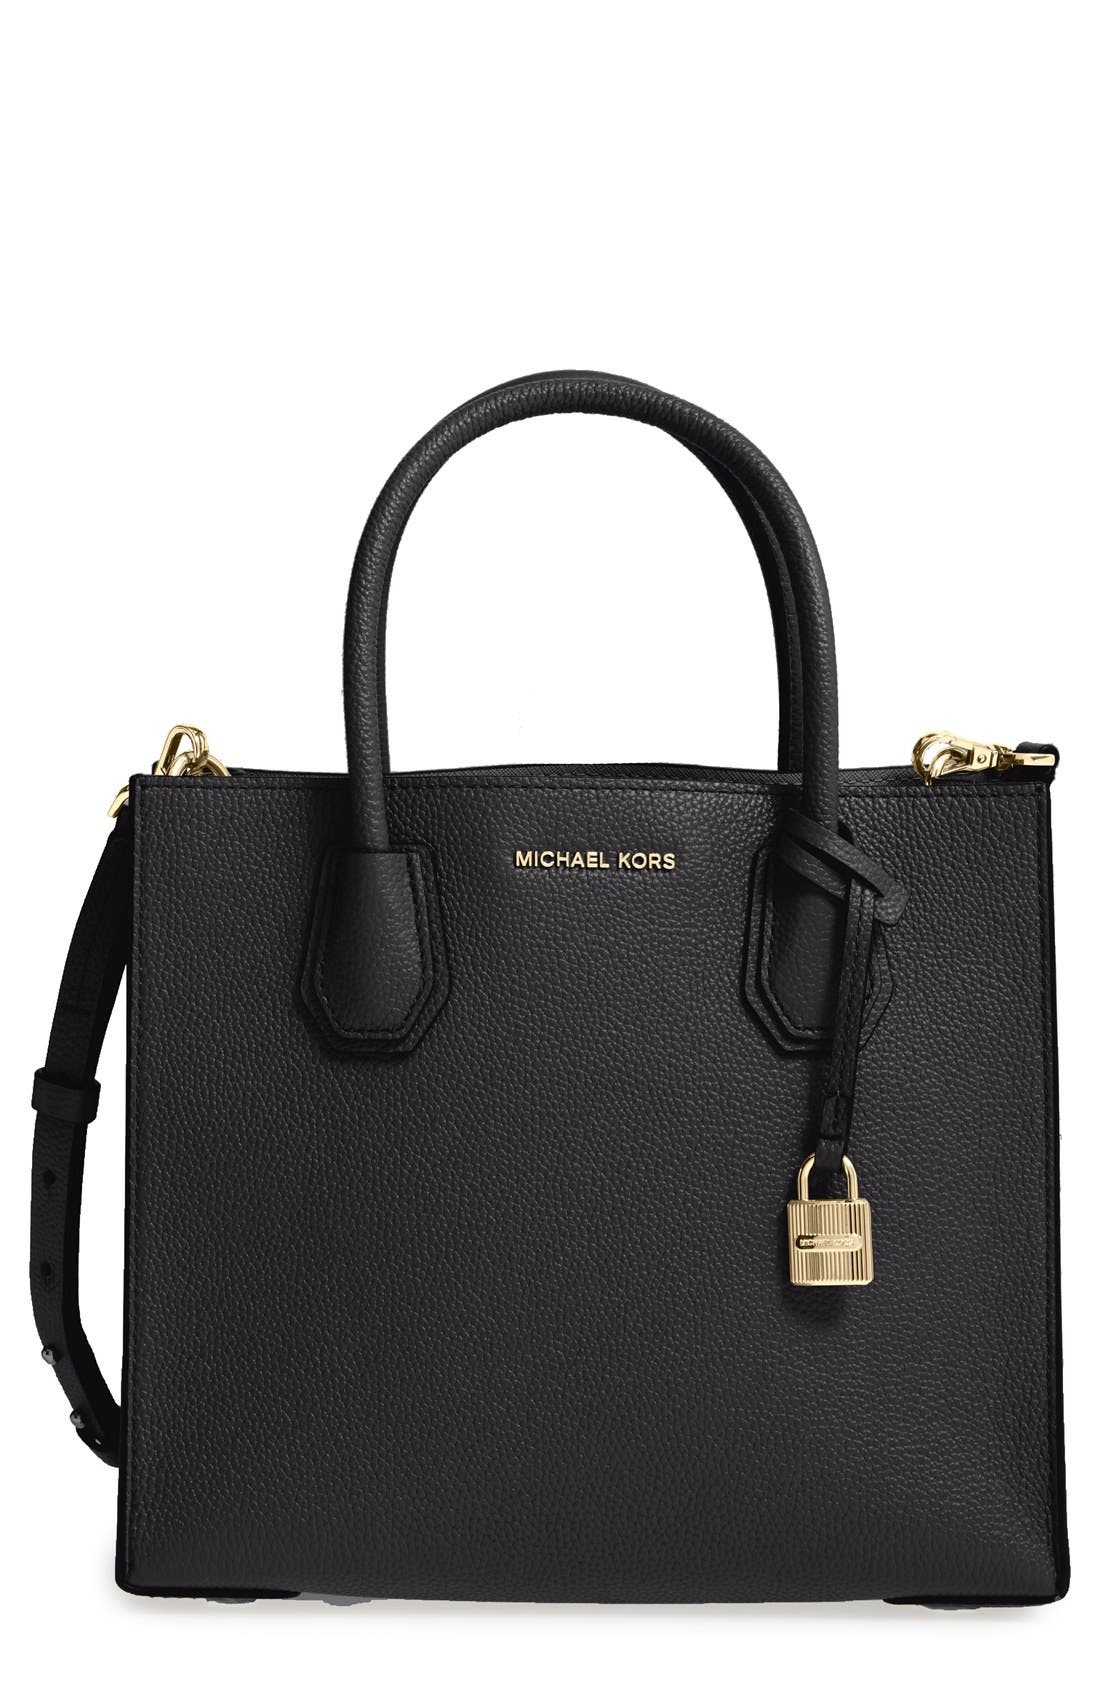 MICHAEL Michael Kors \u0027Medium Mercer\u0027 Leather Tote